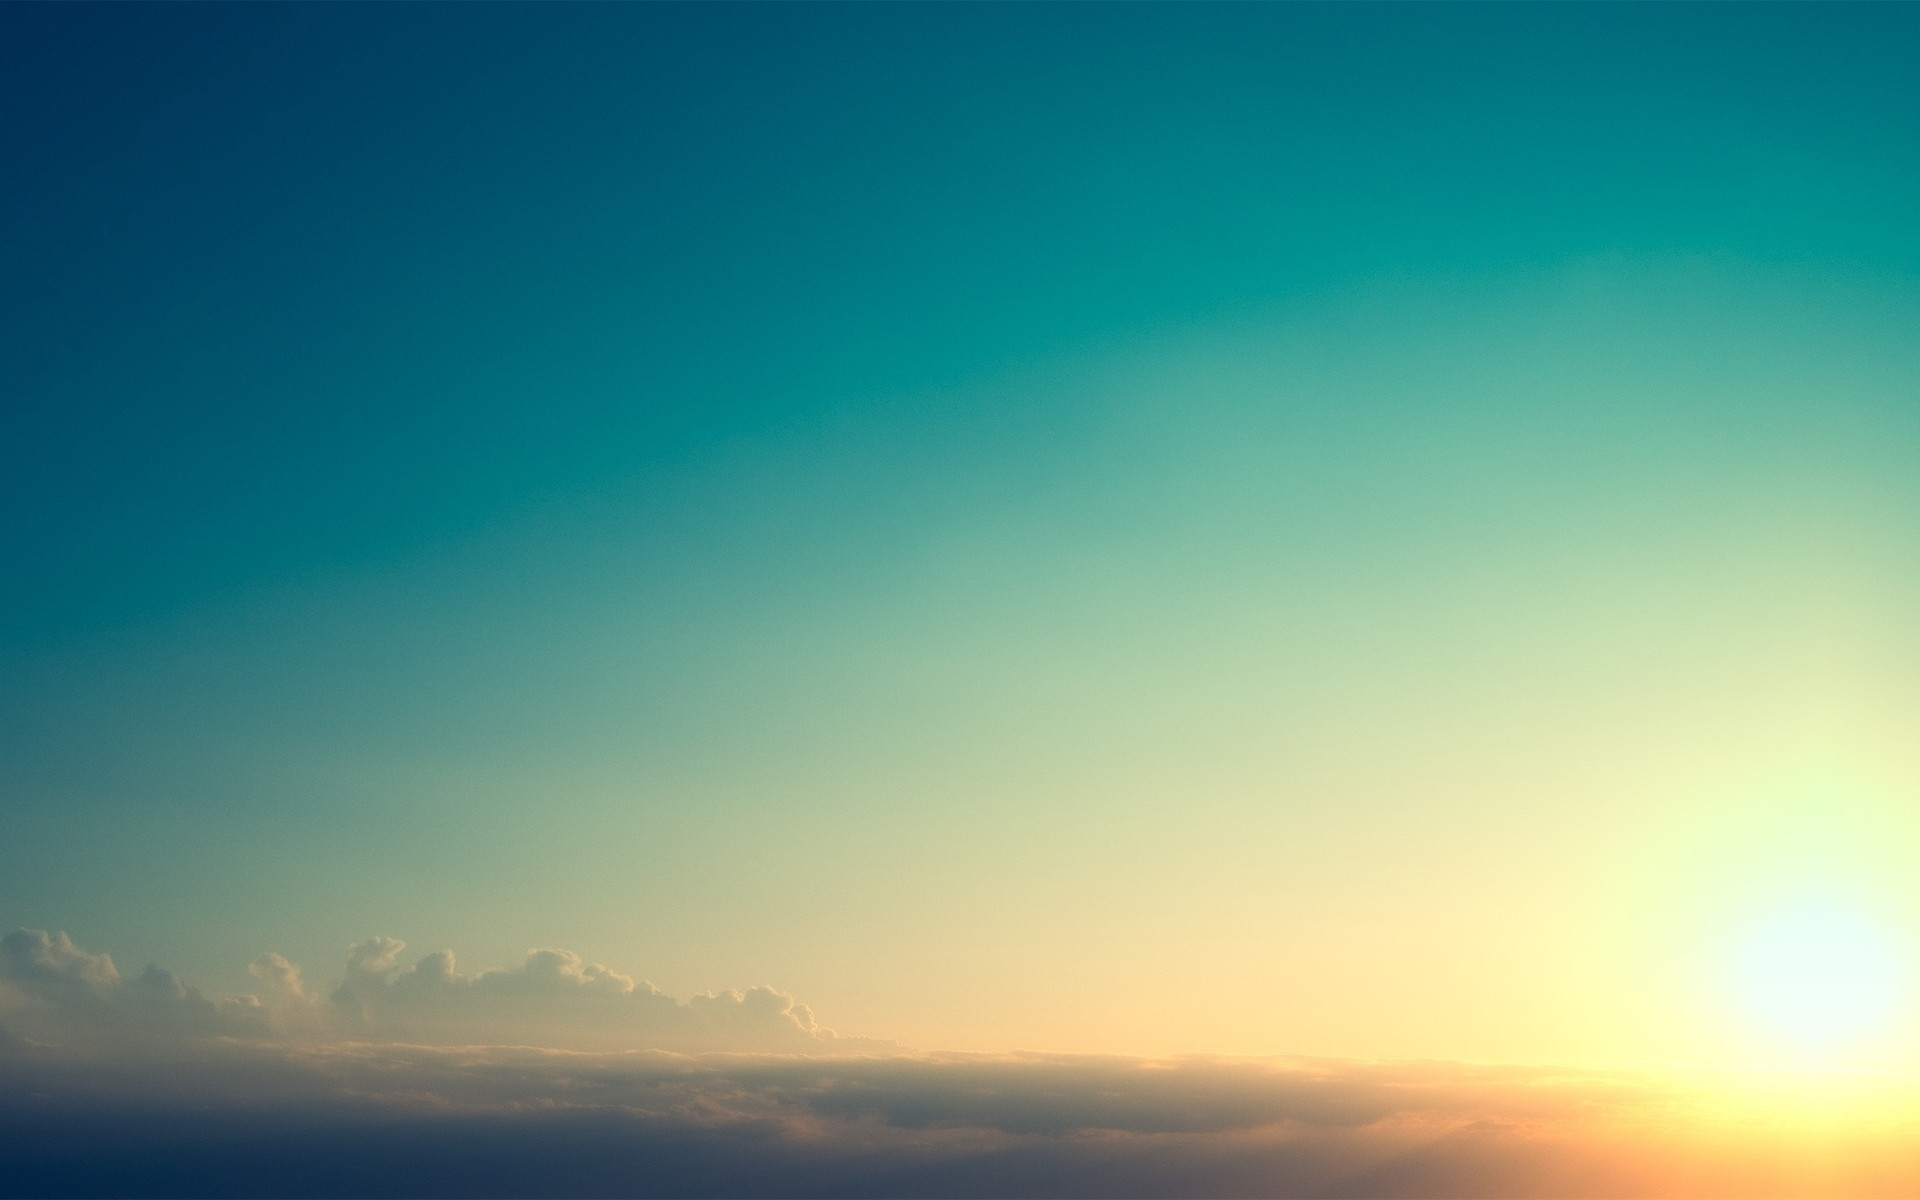 1920x1200 Clear sky Wallpaper | Free Wallpapers, Desktop Wallpapers, HD .